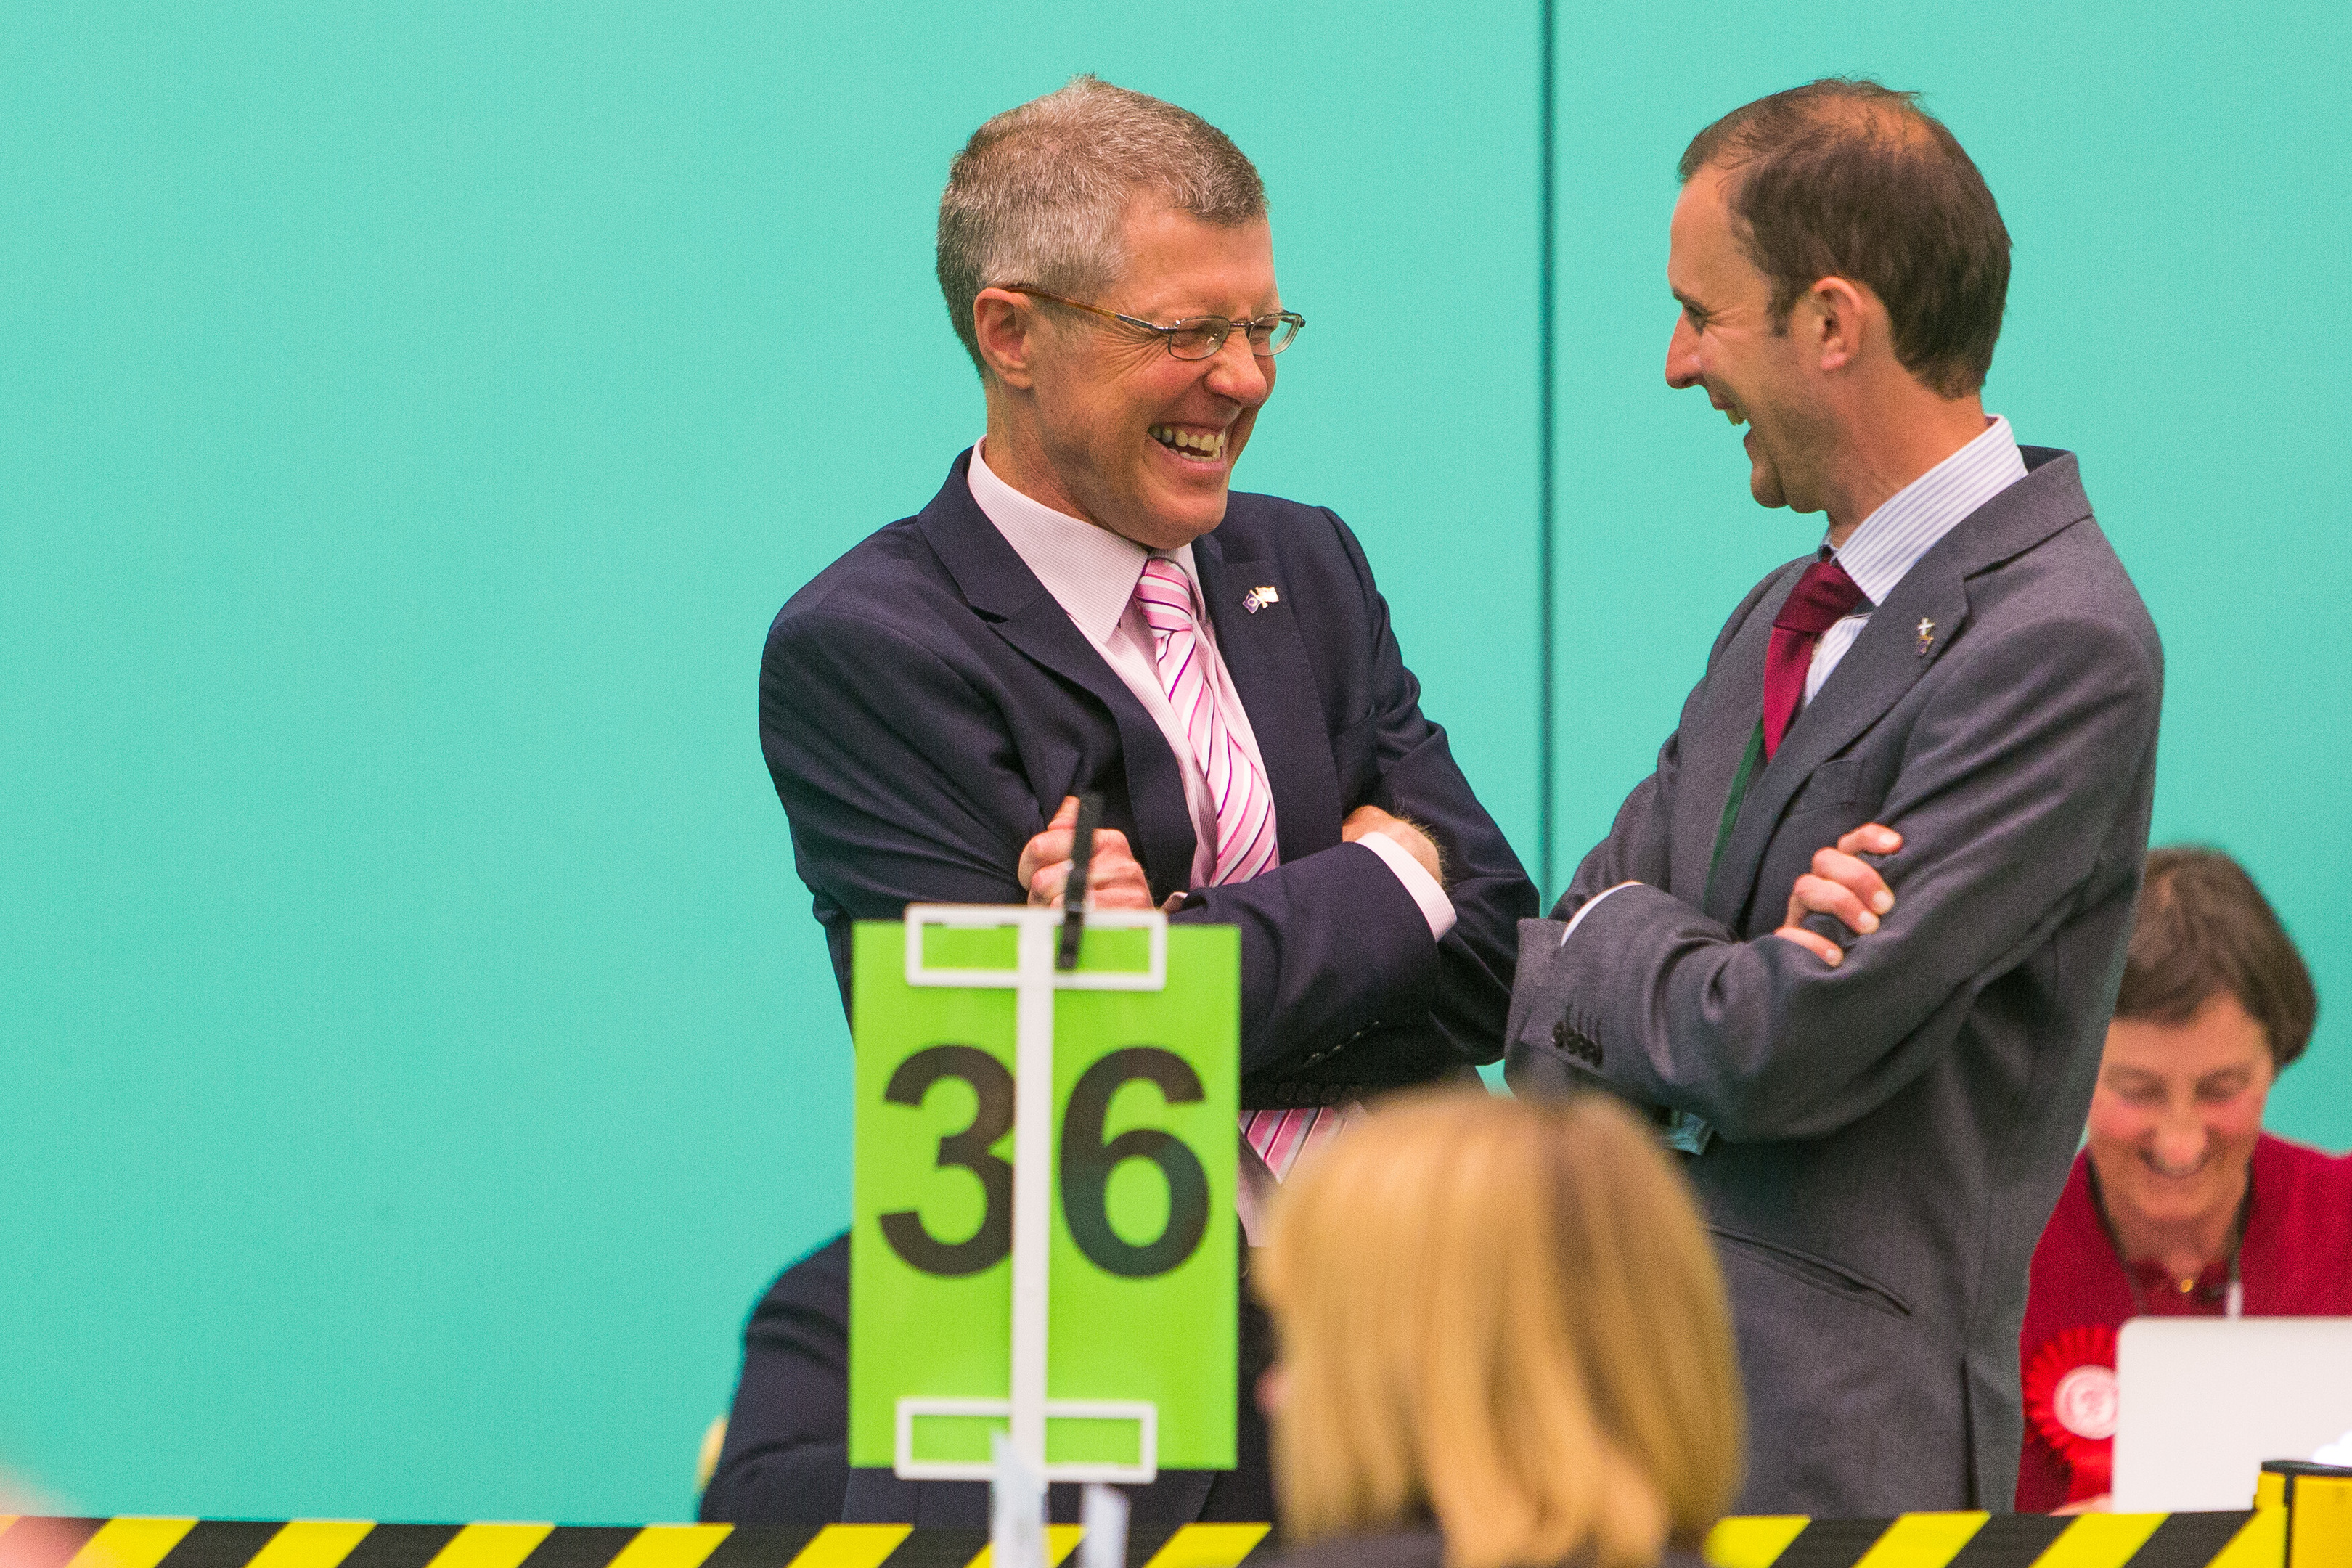 Willie Rennie (Lib Dem) shares a joke with Stephen Gethins (SNP) despite the tension at the count at the Michael Woods Centre in Glenrothes.